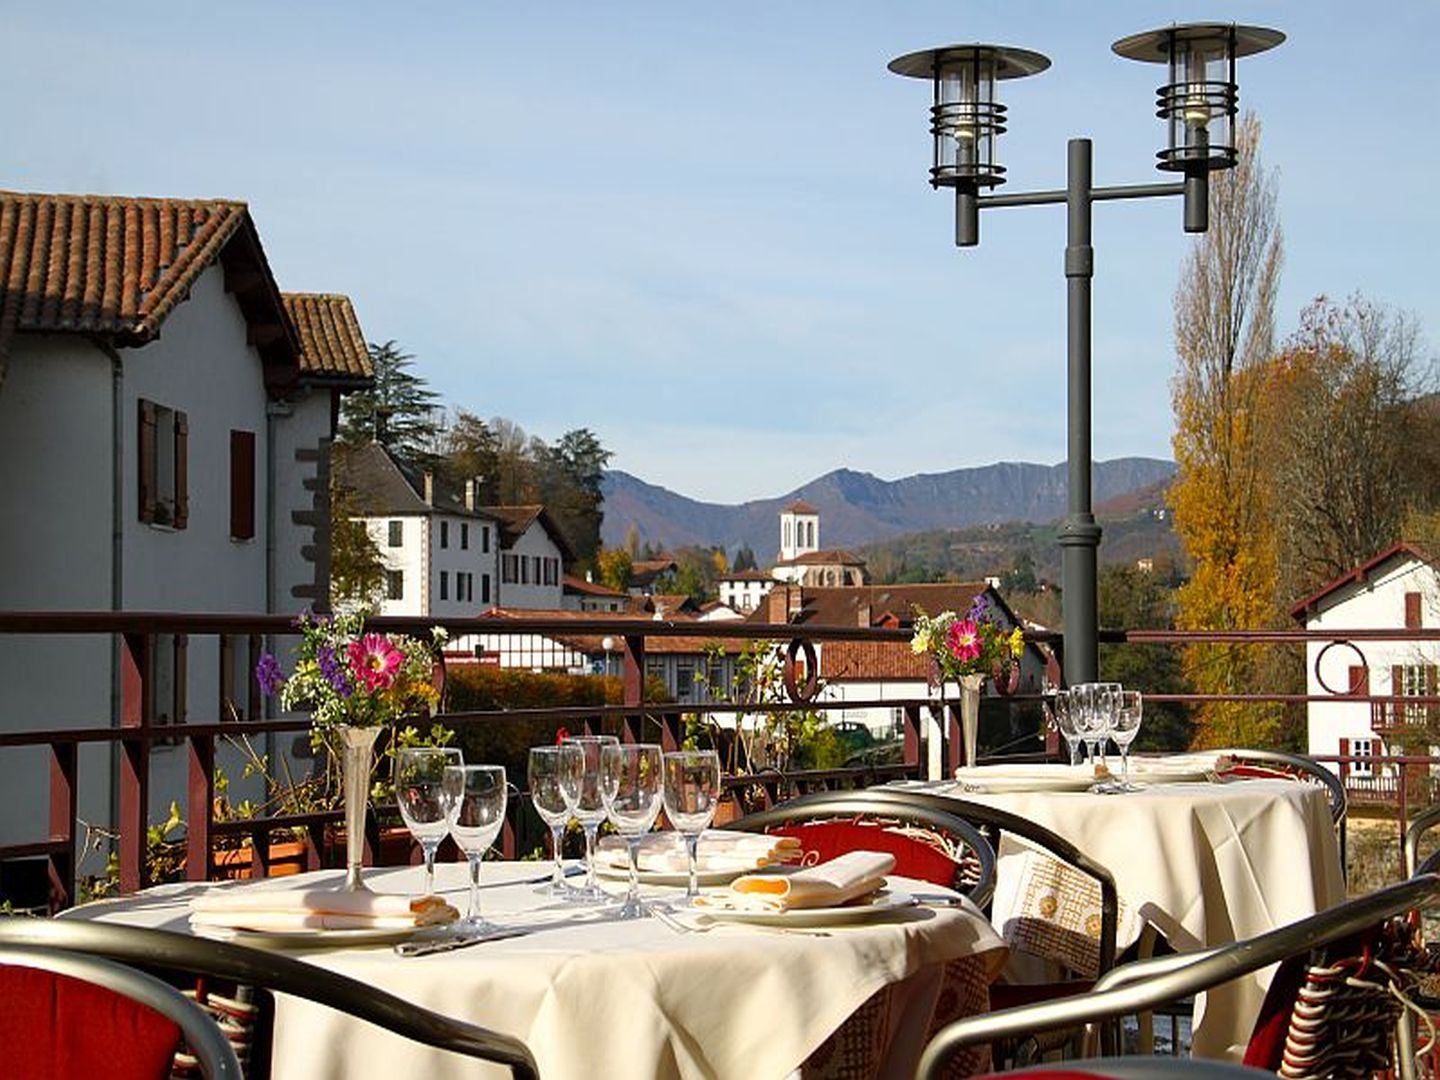 Restaurant le central saint jean pied de port 64 - Places to stay in st jean pied de port ...